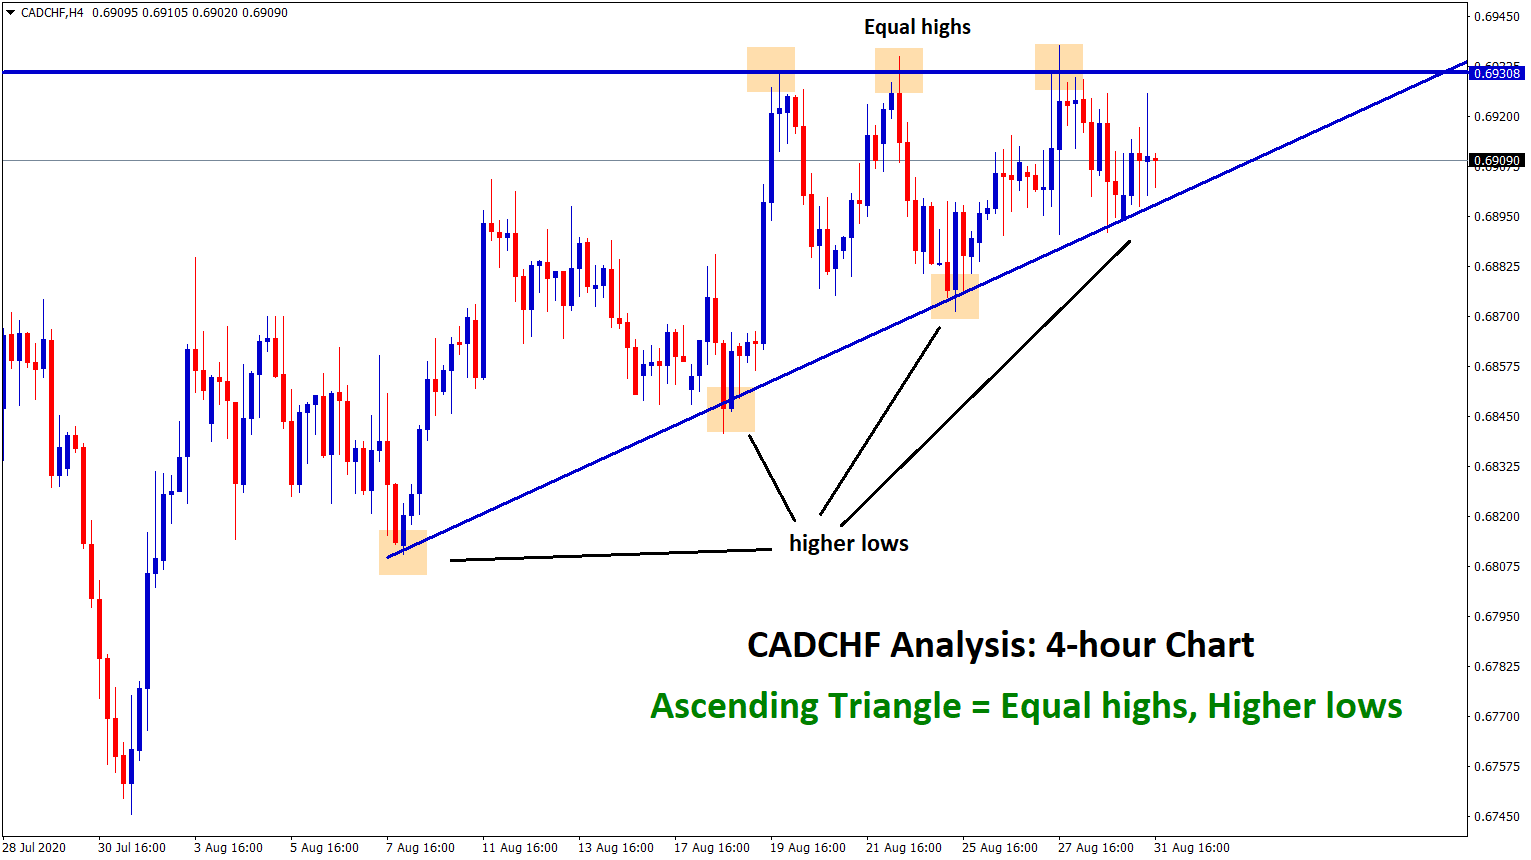 ascending triangle in cadchf 4hour